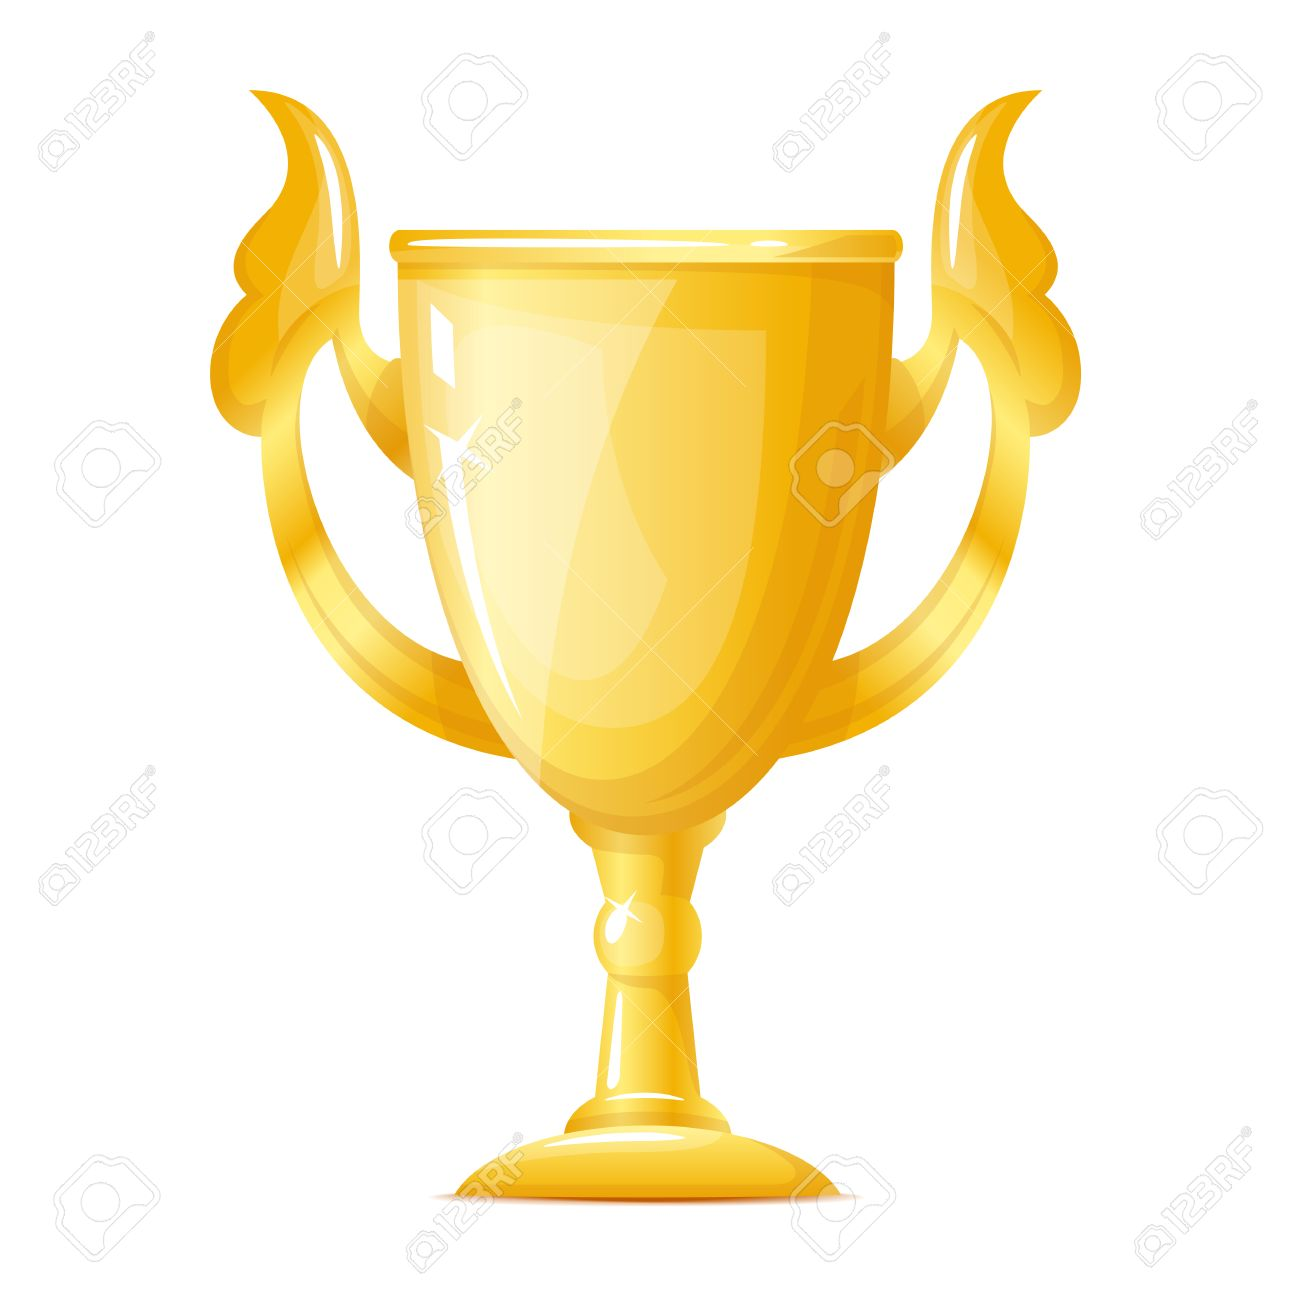 One Big Golden Cup Gold Trophy Quality Illustration Isolated Stock Vector